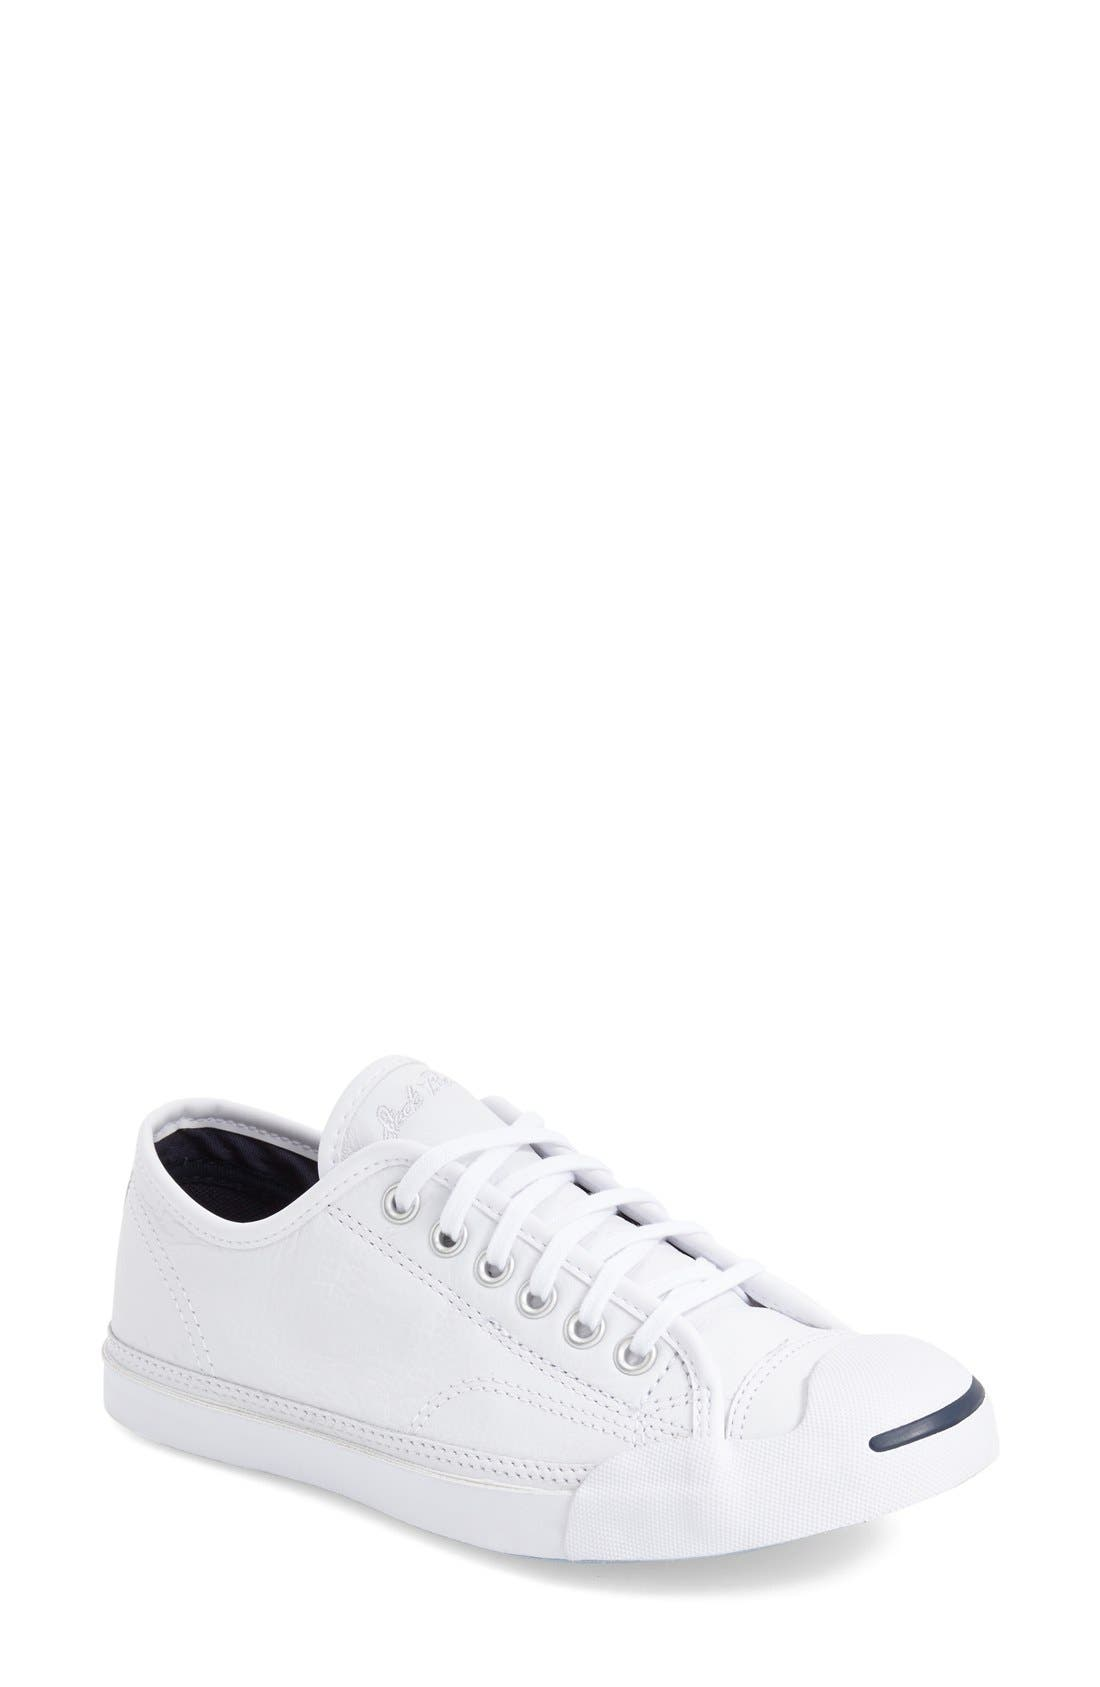 'Jack Purcell' Low Top Sneaker,                             Main thumbnail 1, color,                             100